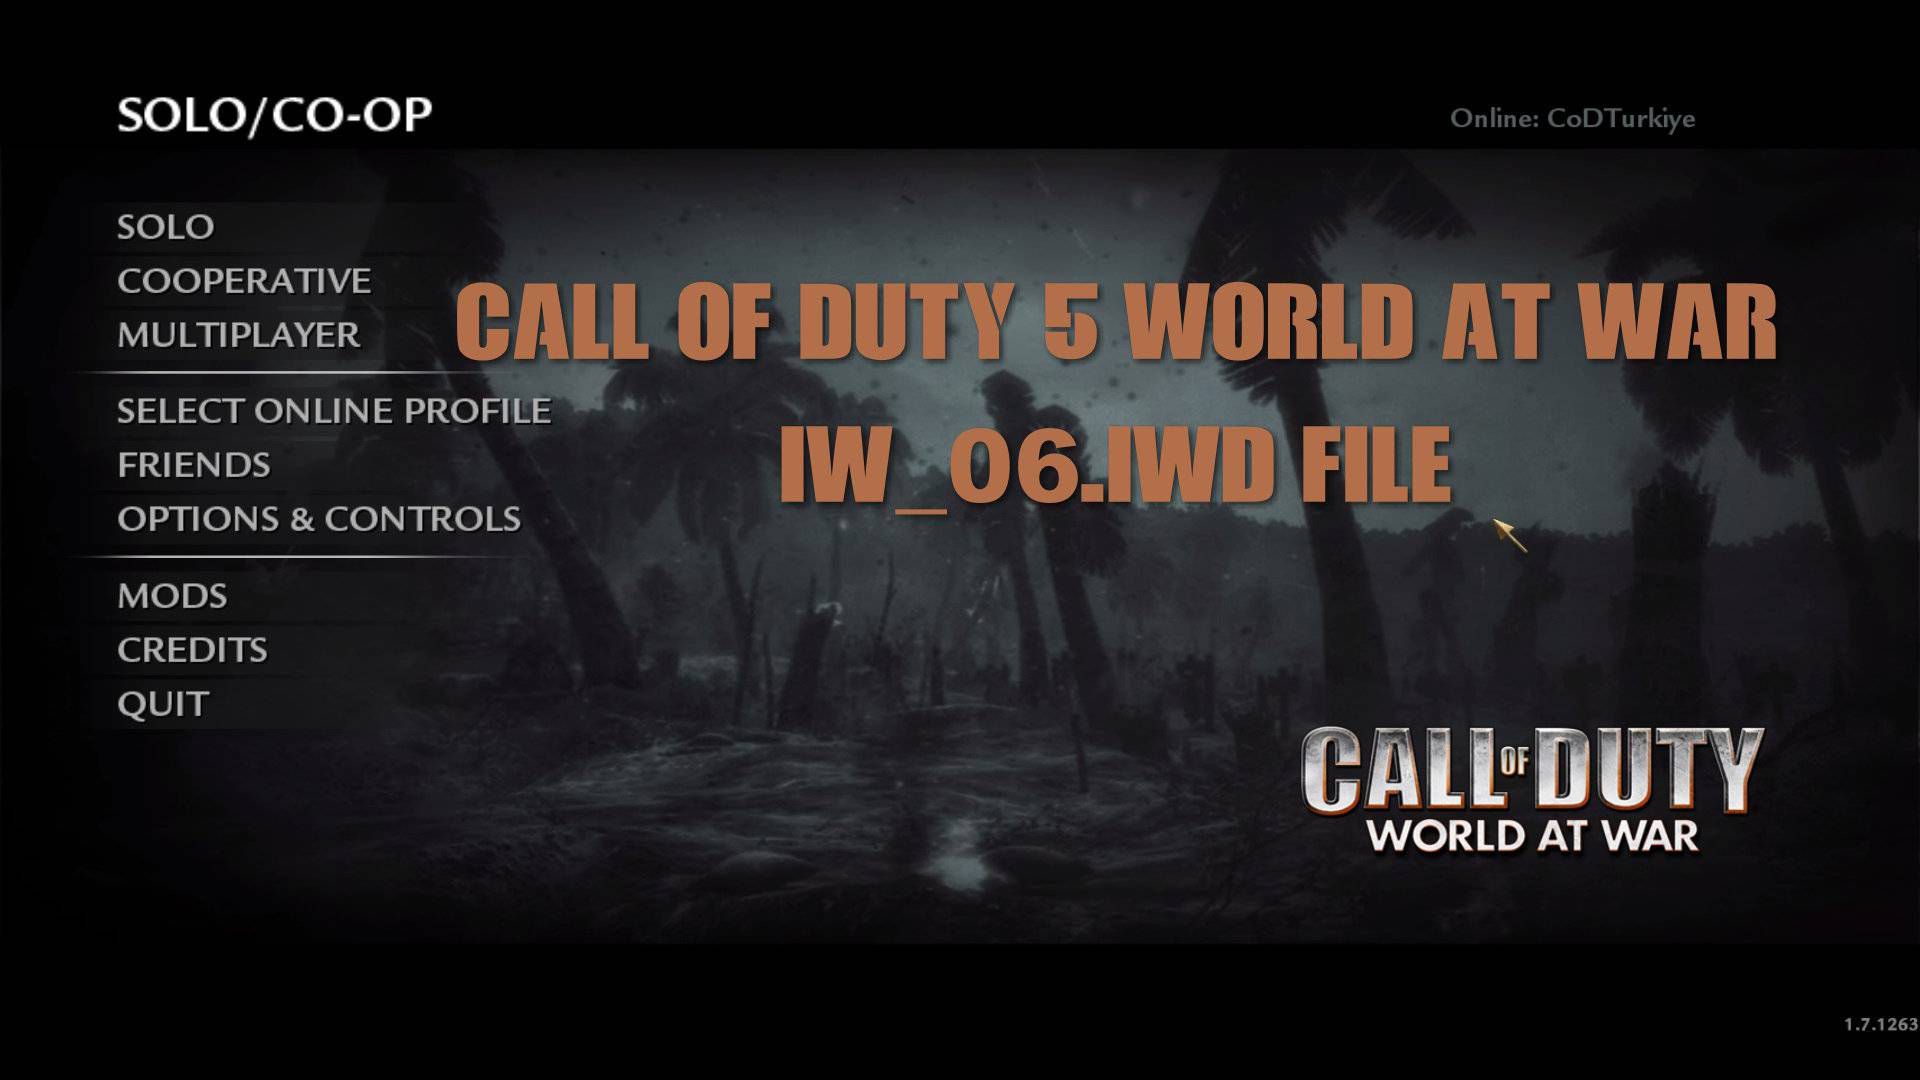 Call of Duty 5 World at War iw_06.iwd File Download